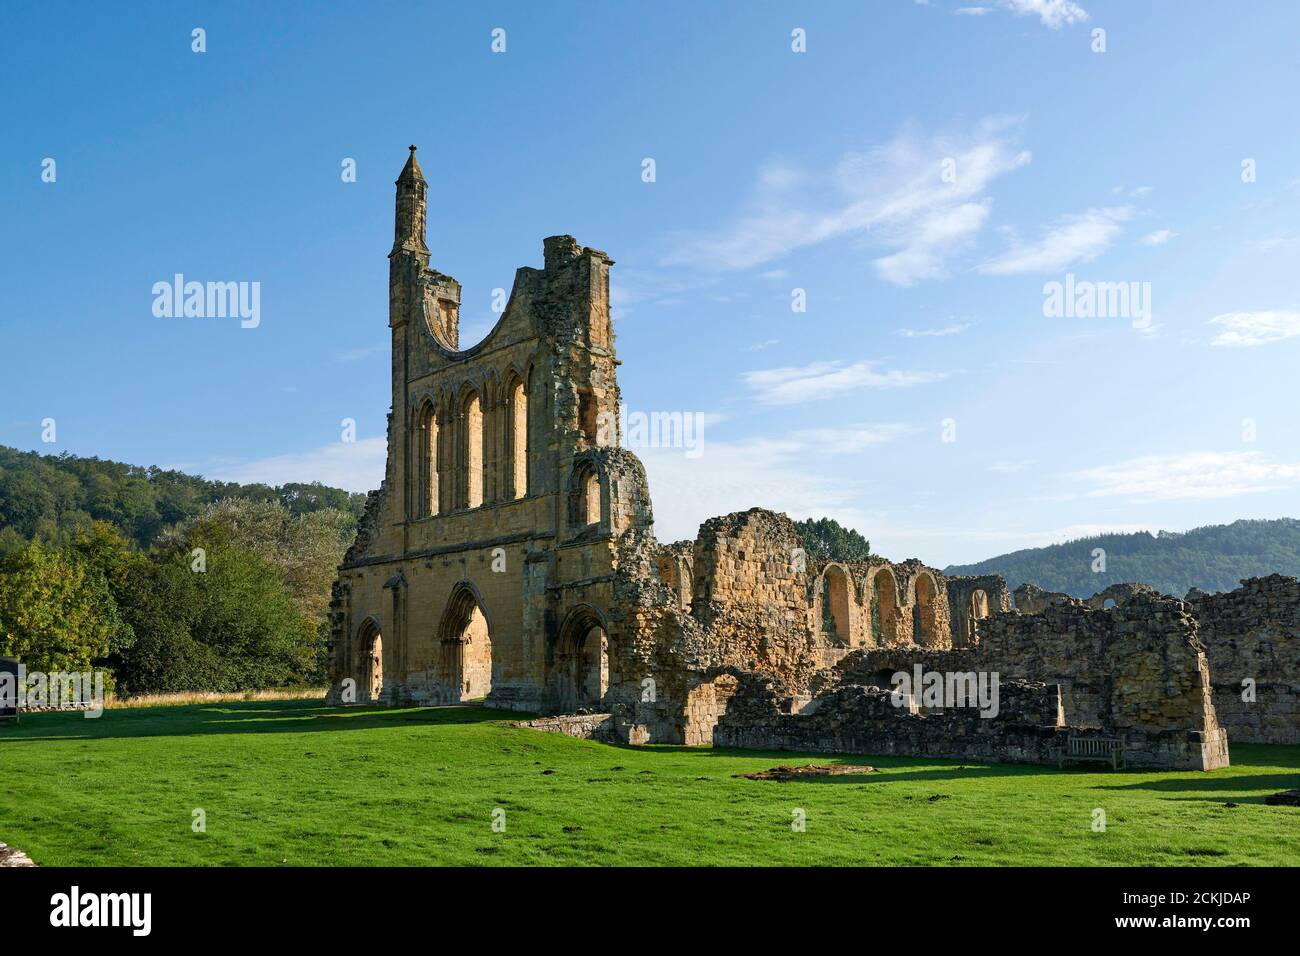 Byland Abbey, Coxwold, in the Ryedale district of North Yorkshire, England, in the North York Moors National Park Stock Photo